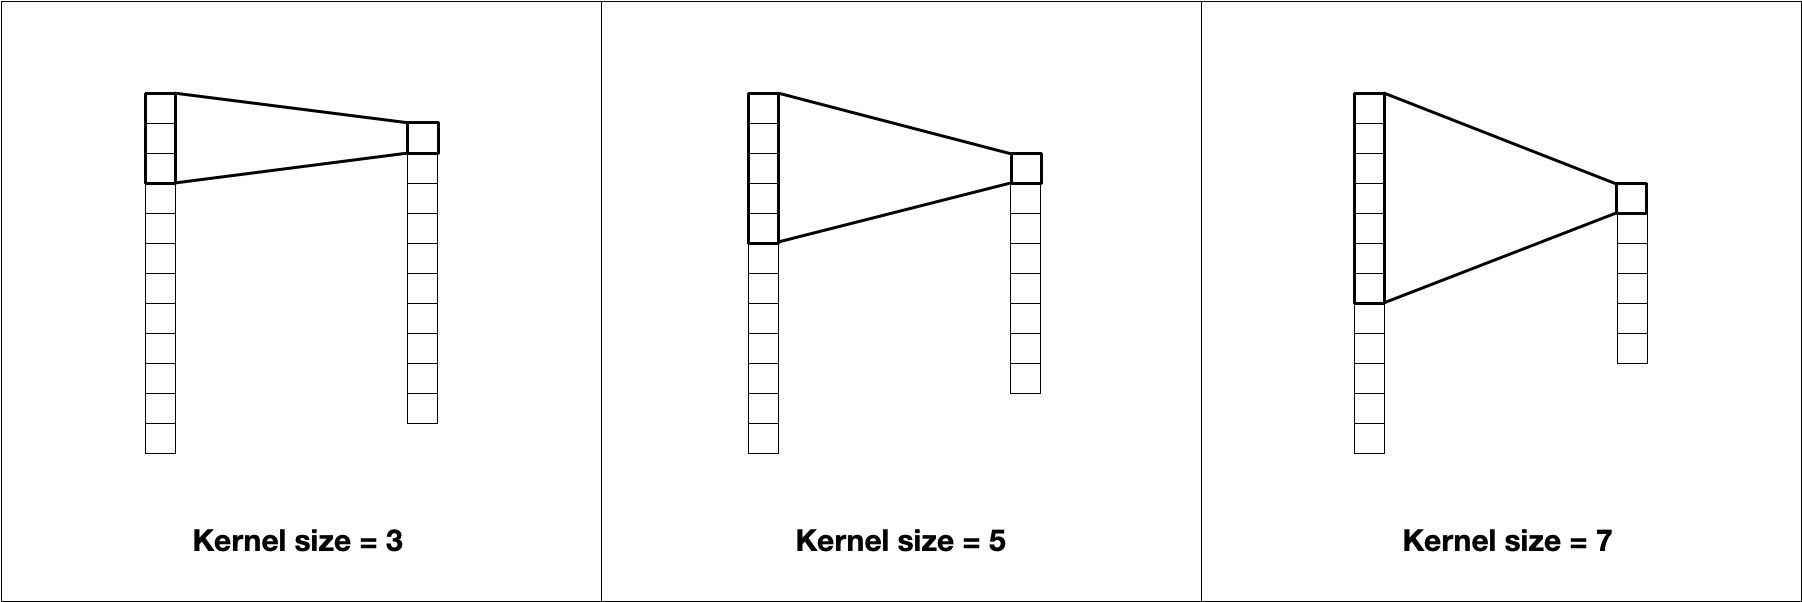 The kernel size affects the size of the resulting tensor. A kernel size of 3 uses the information from 3 values to calculate 1 value.